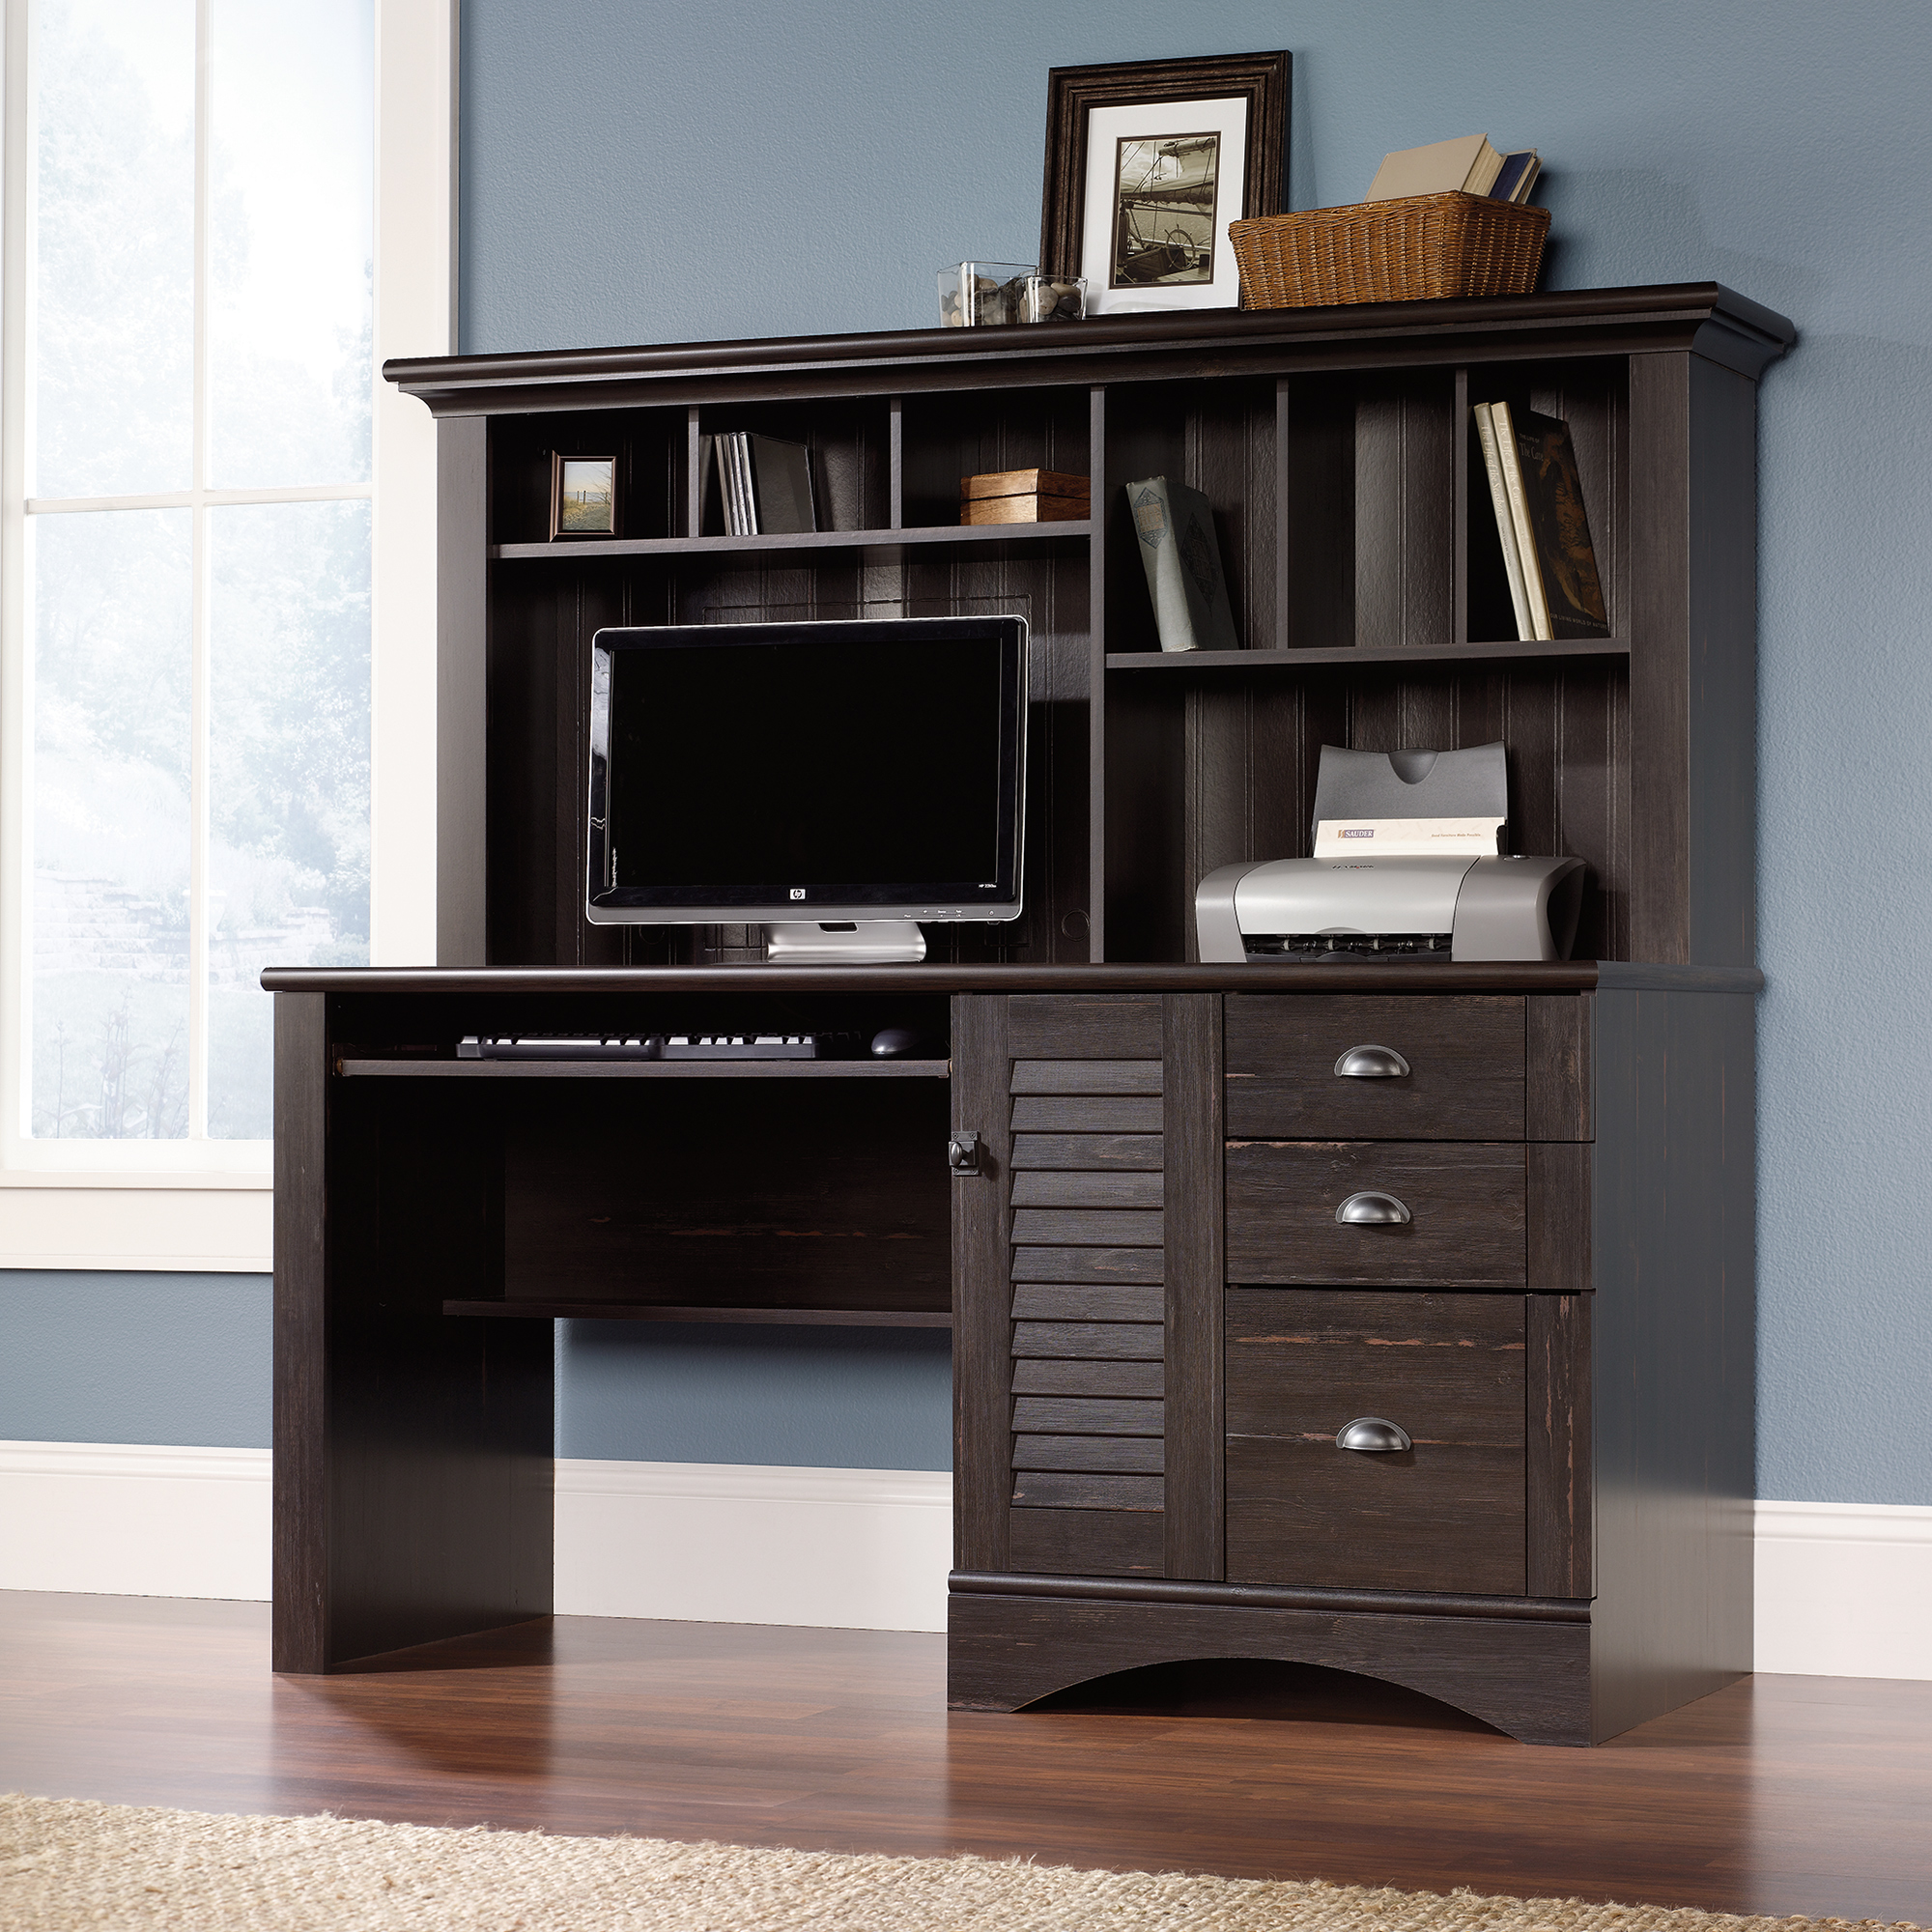 Sauder Computer Desks | Sauder Beginnings Computer Desk | Walmart Computers Desk